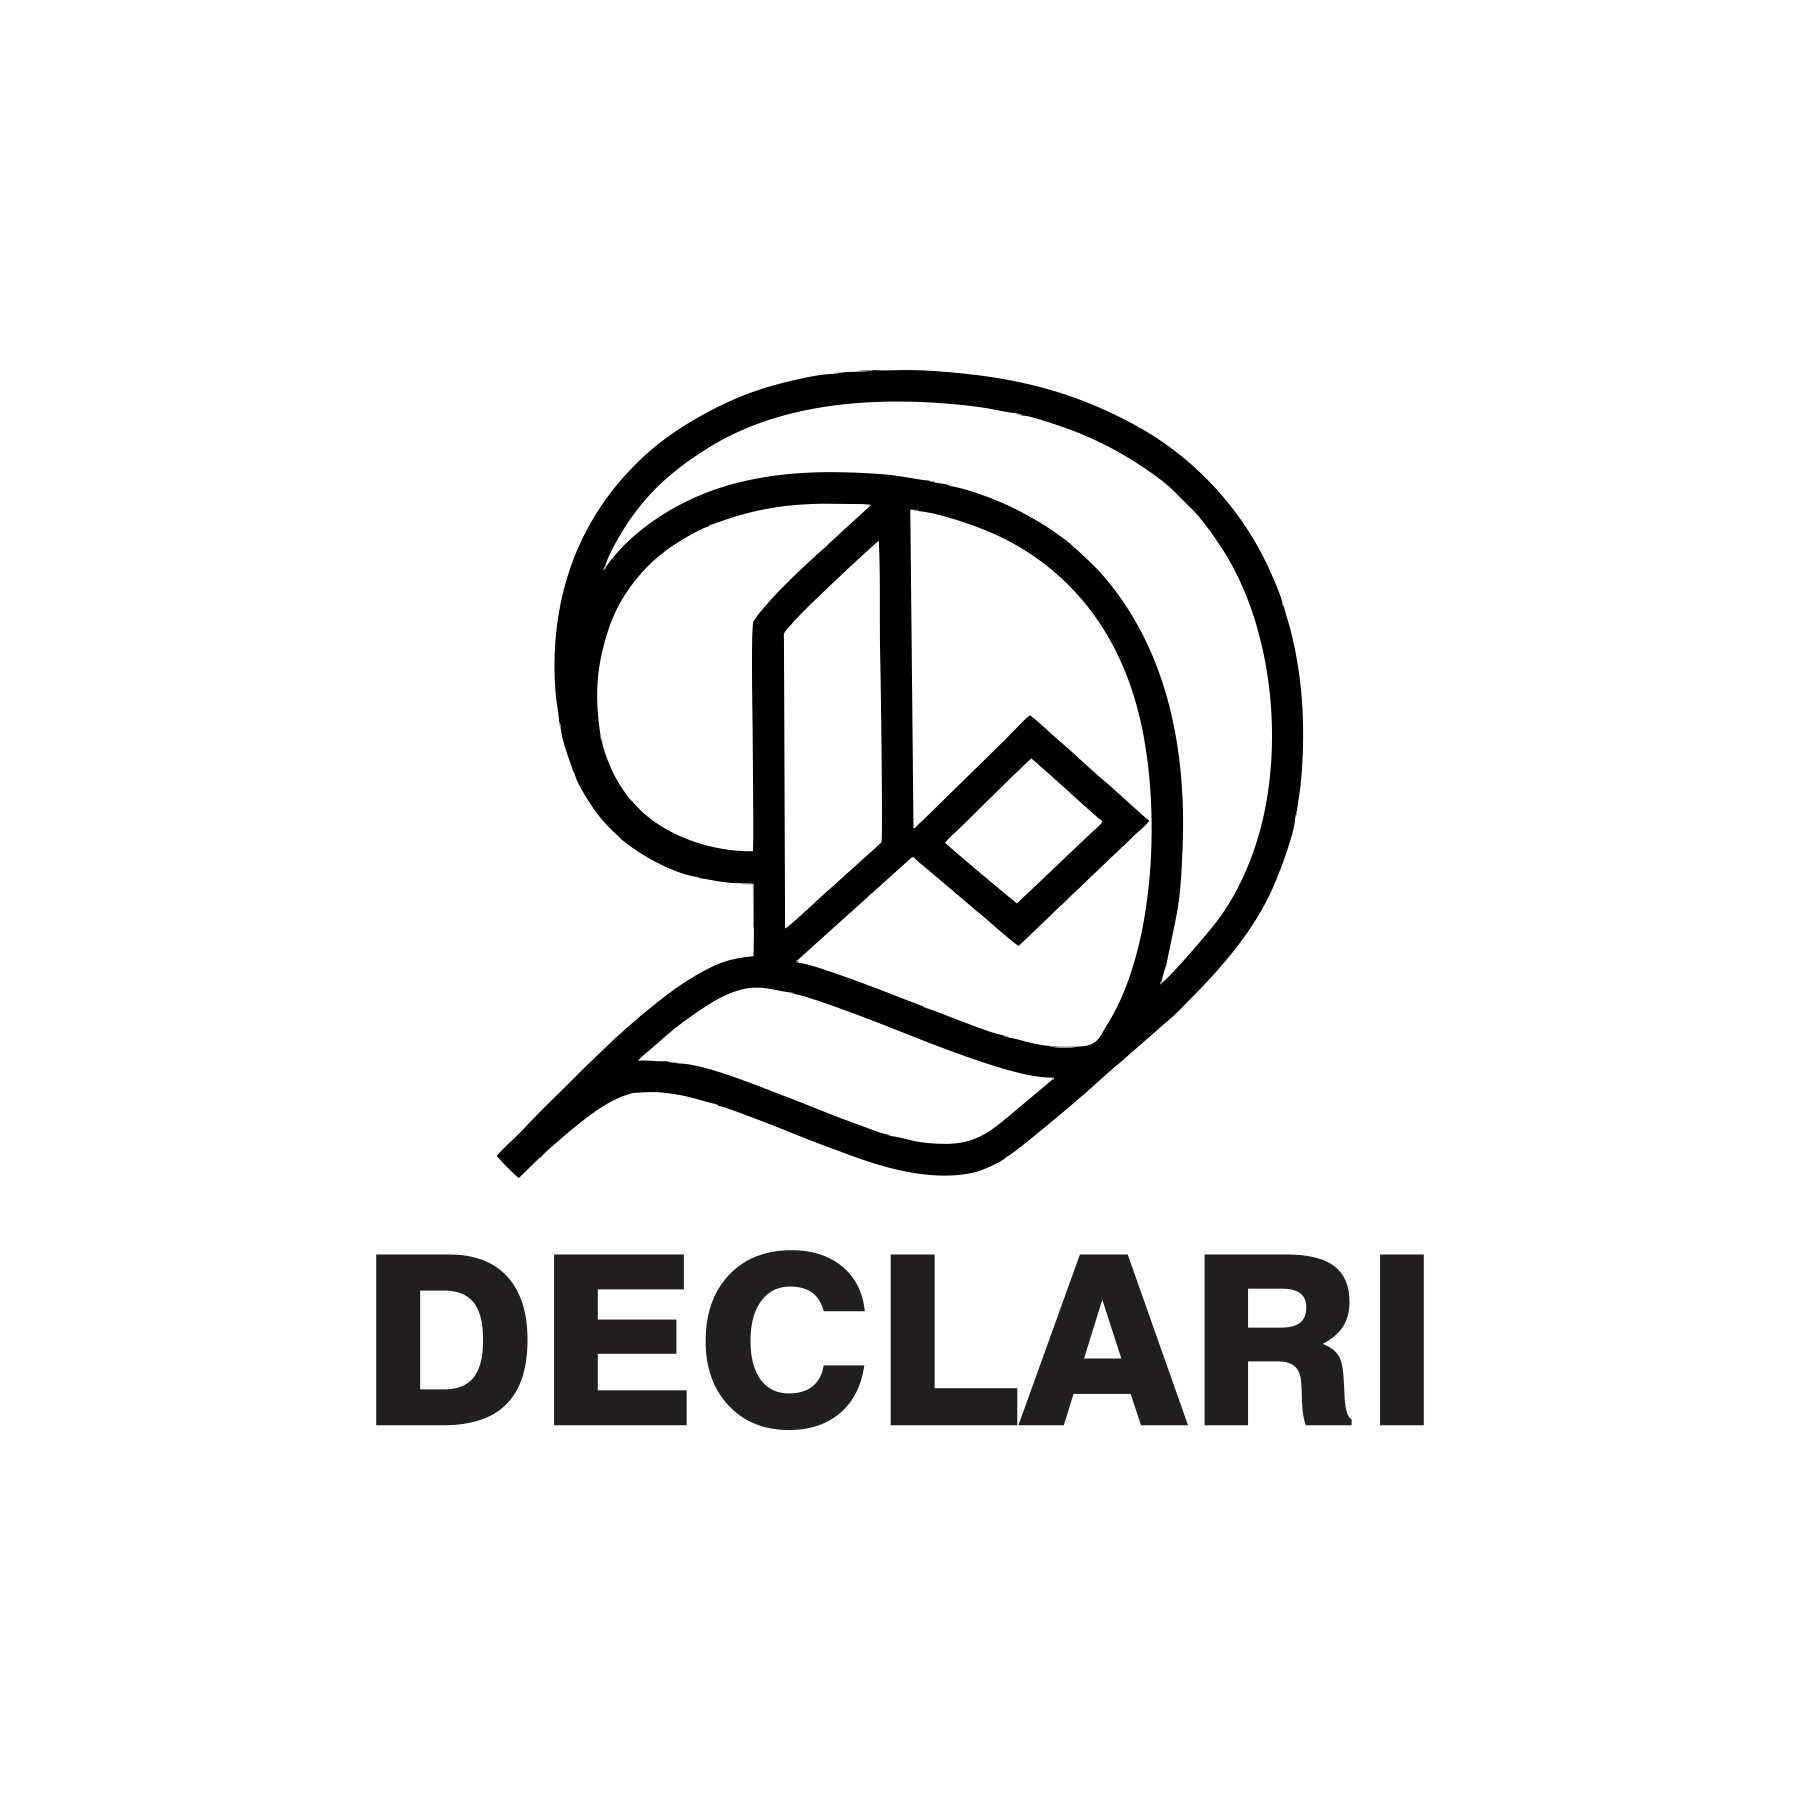 Declari : Brand Short Description Type Here.